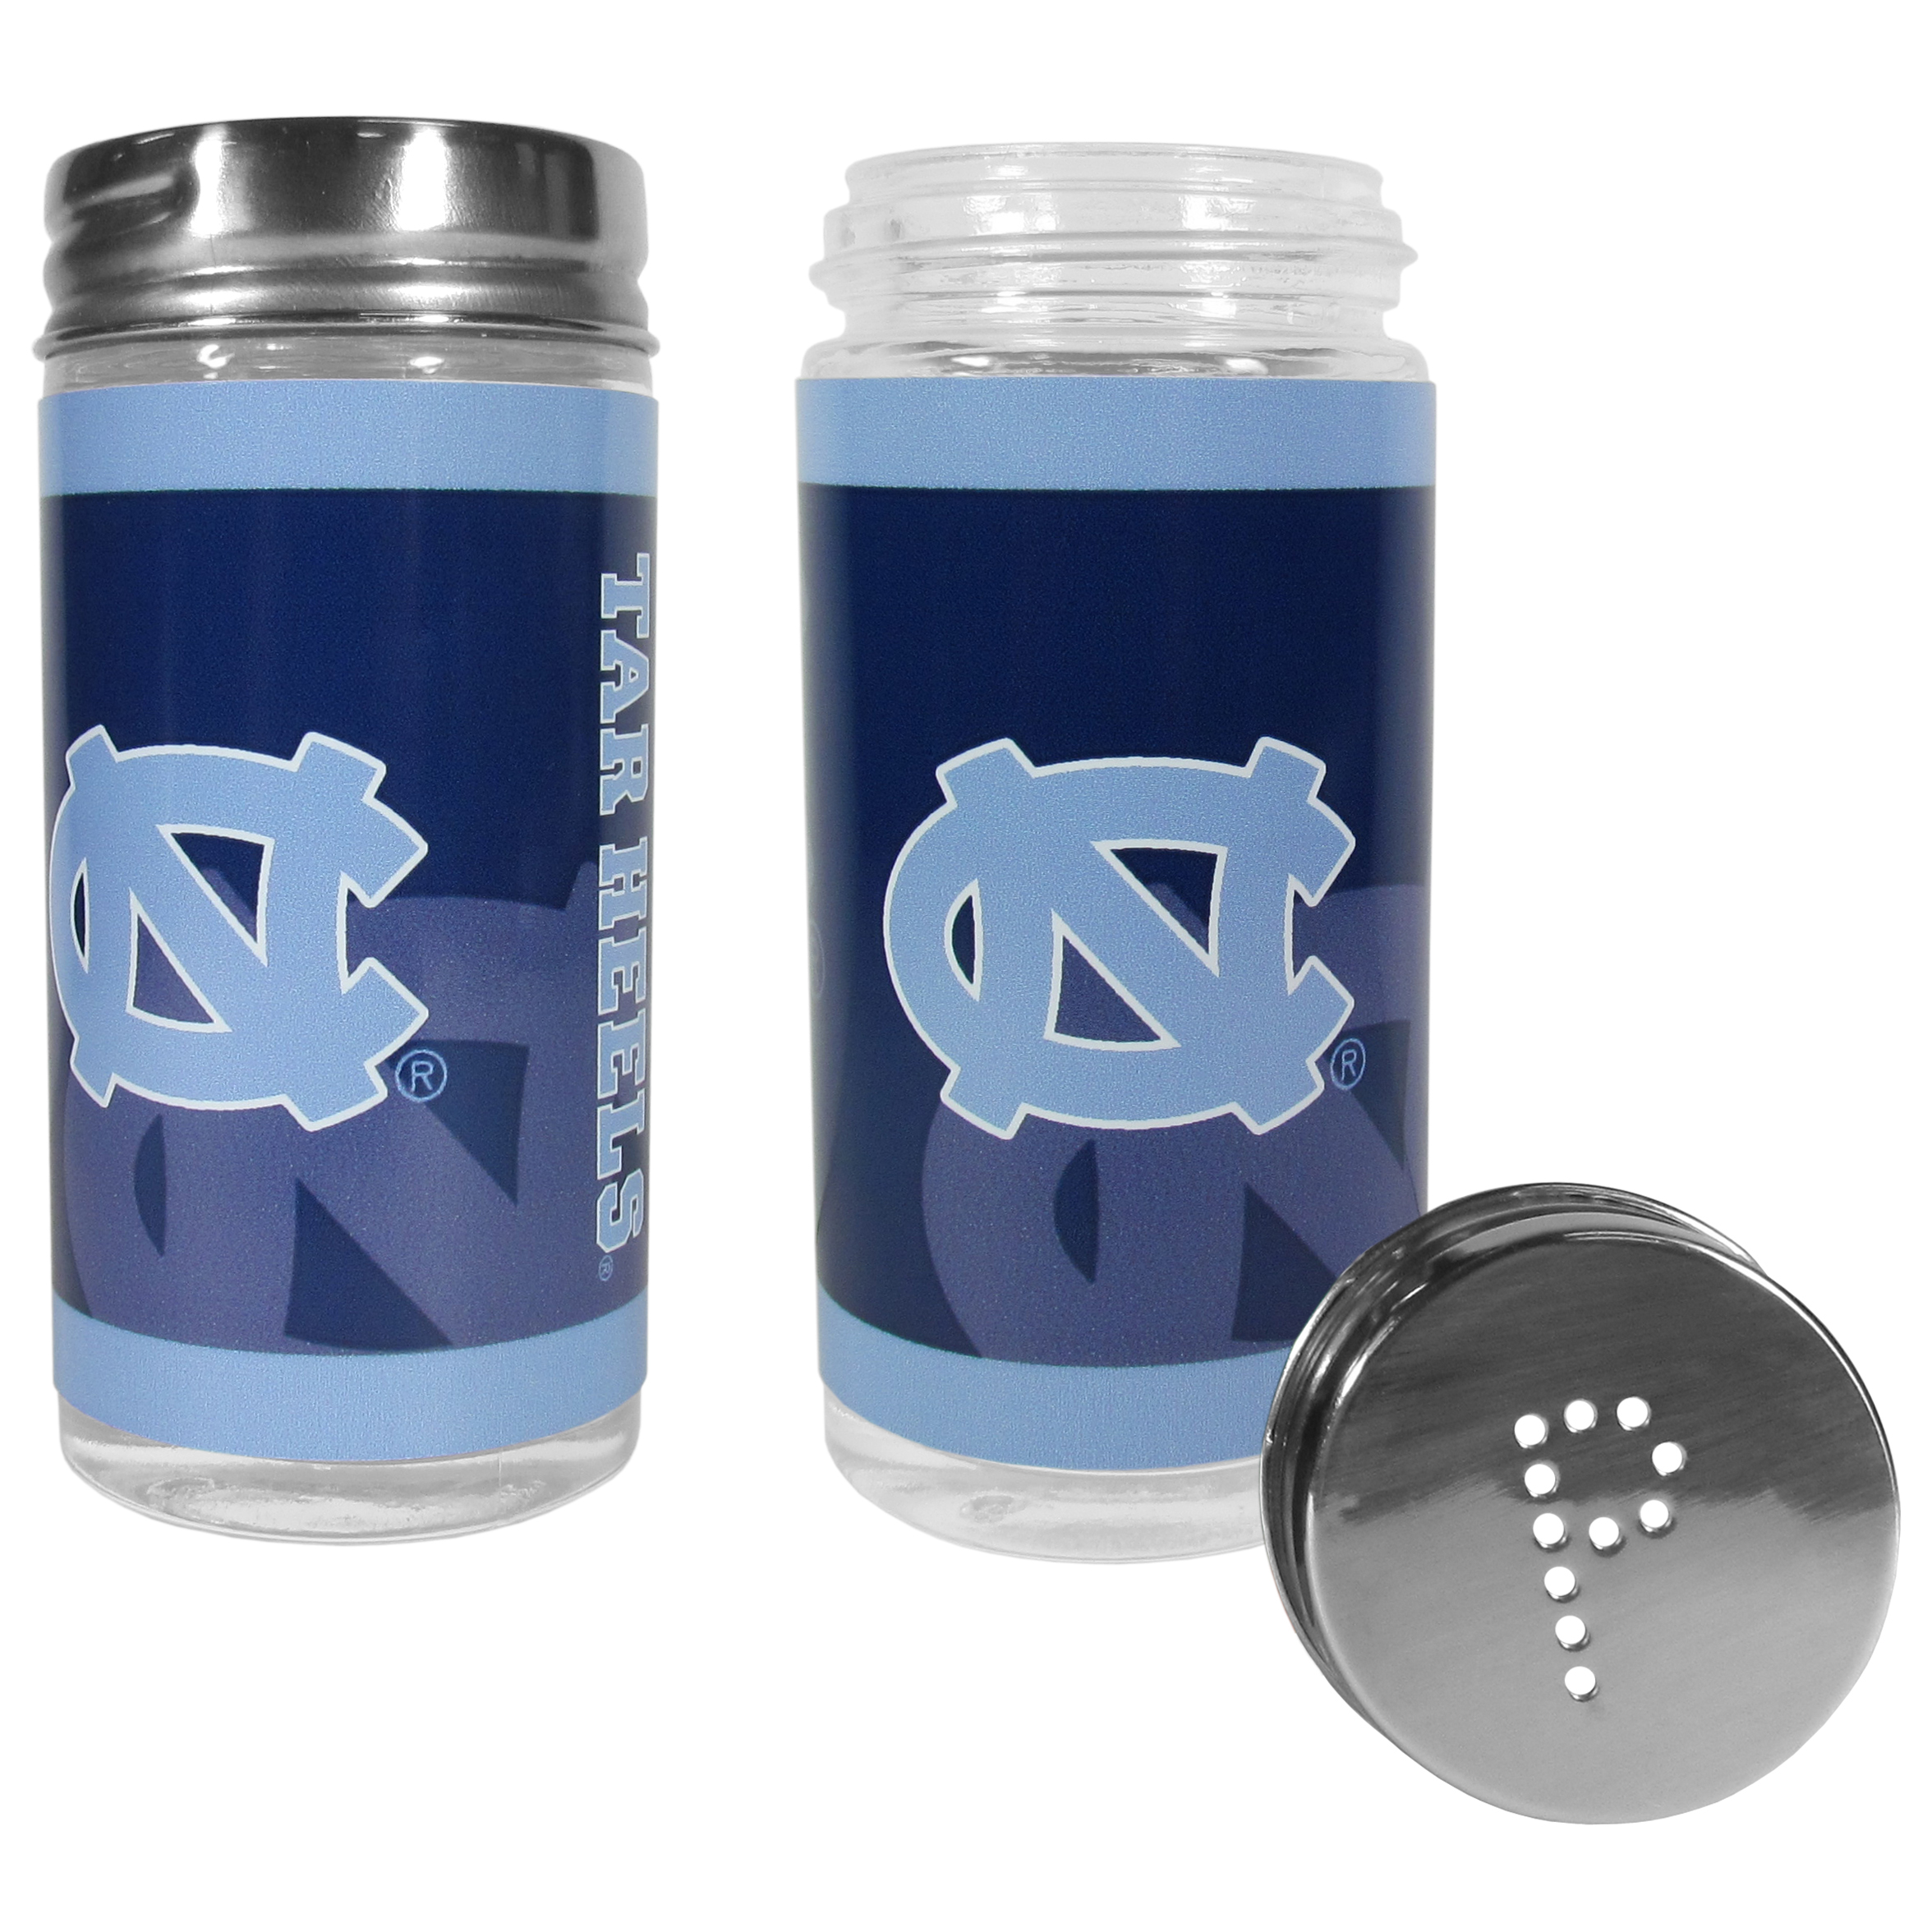 N. Carolina Tar Heels Tailgater Salt and Pepper Shakers - No tailgate party is complete without your N. Carolina Tar Heels salt & pepper shakers featuring bright team graphics. The glass shakers are 3.75 inches tall and the screw top lids have holes that spell out P and S. These team shakers are a great grill accessory whether you are barbecuing on the patio, picnicing or having a game day party.